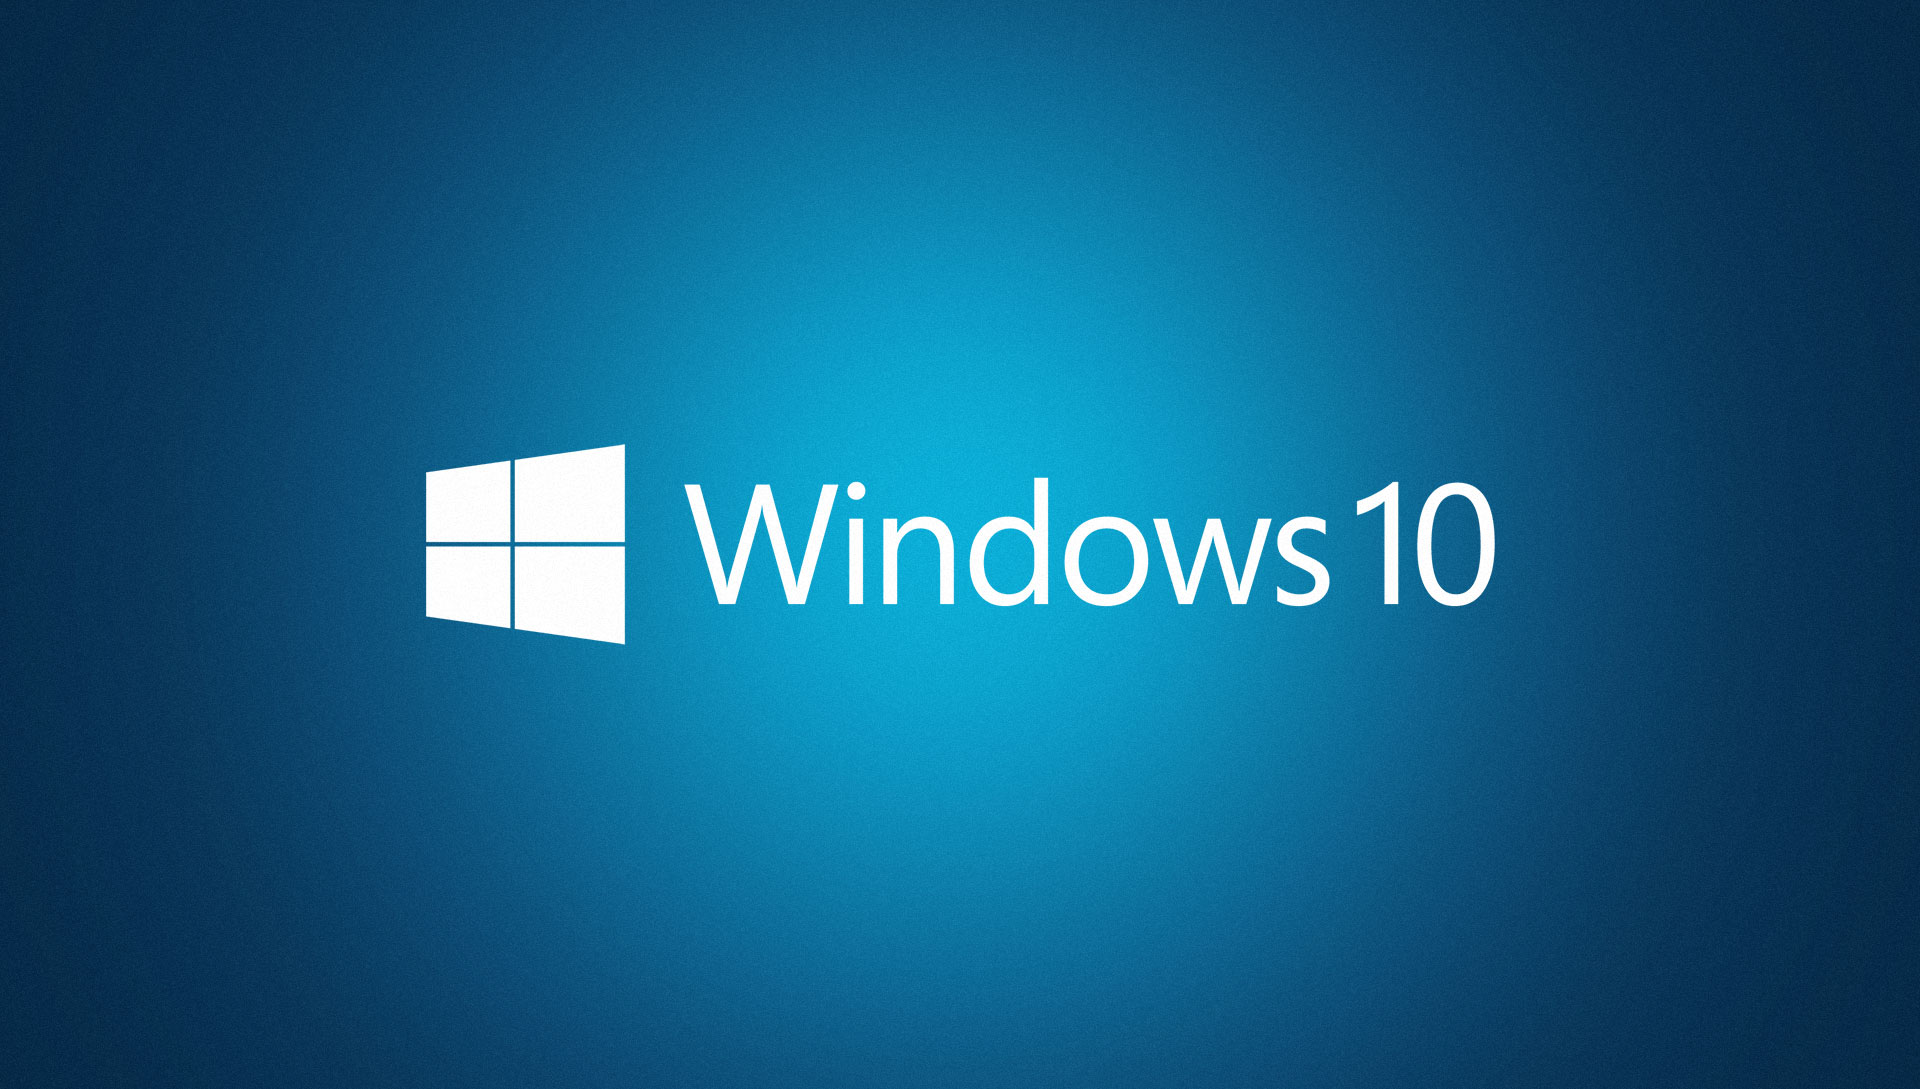 microsoft windows 10 update 10 things to know investorplace